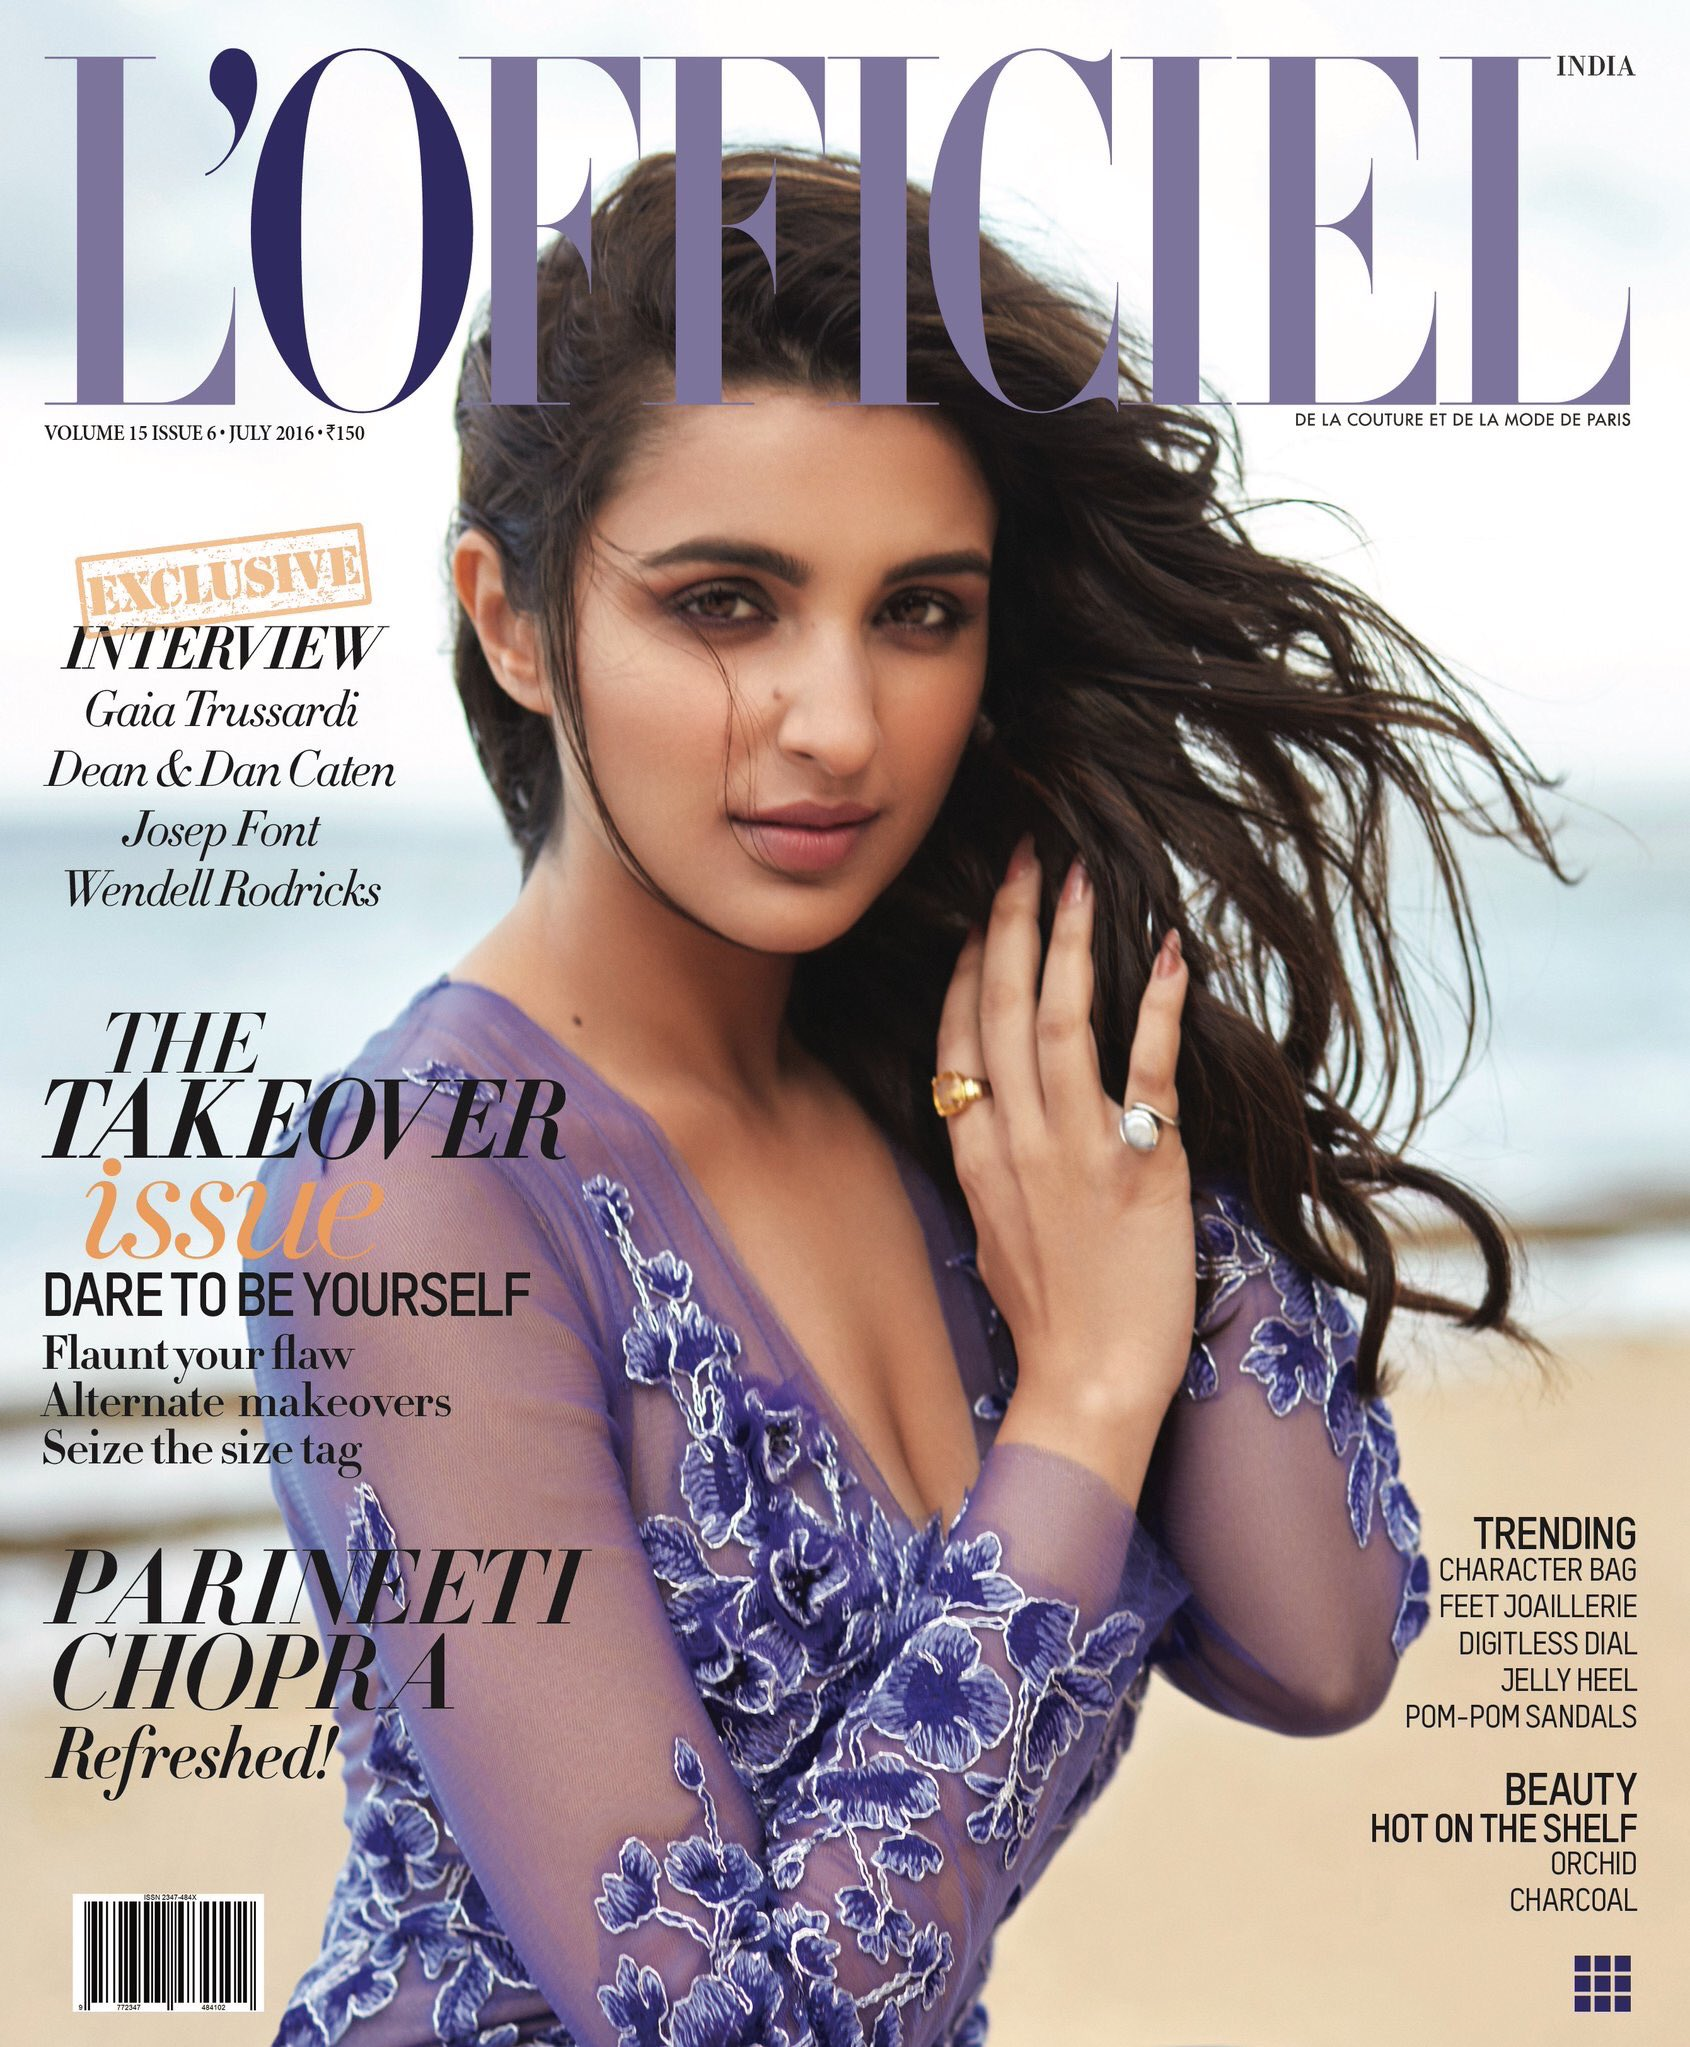 Parineeti Chopra On The Cover Of LOfficiel Magazine India July 2016